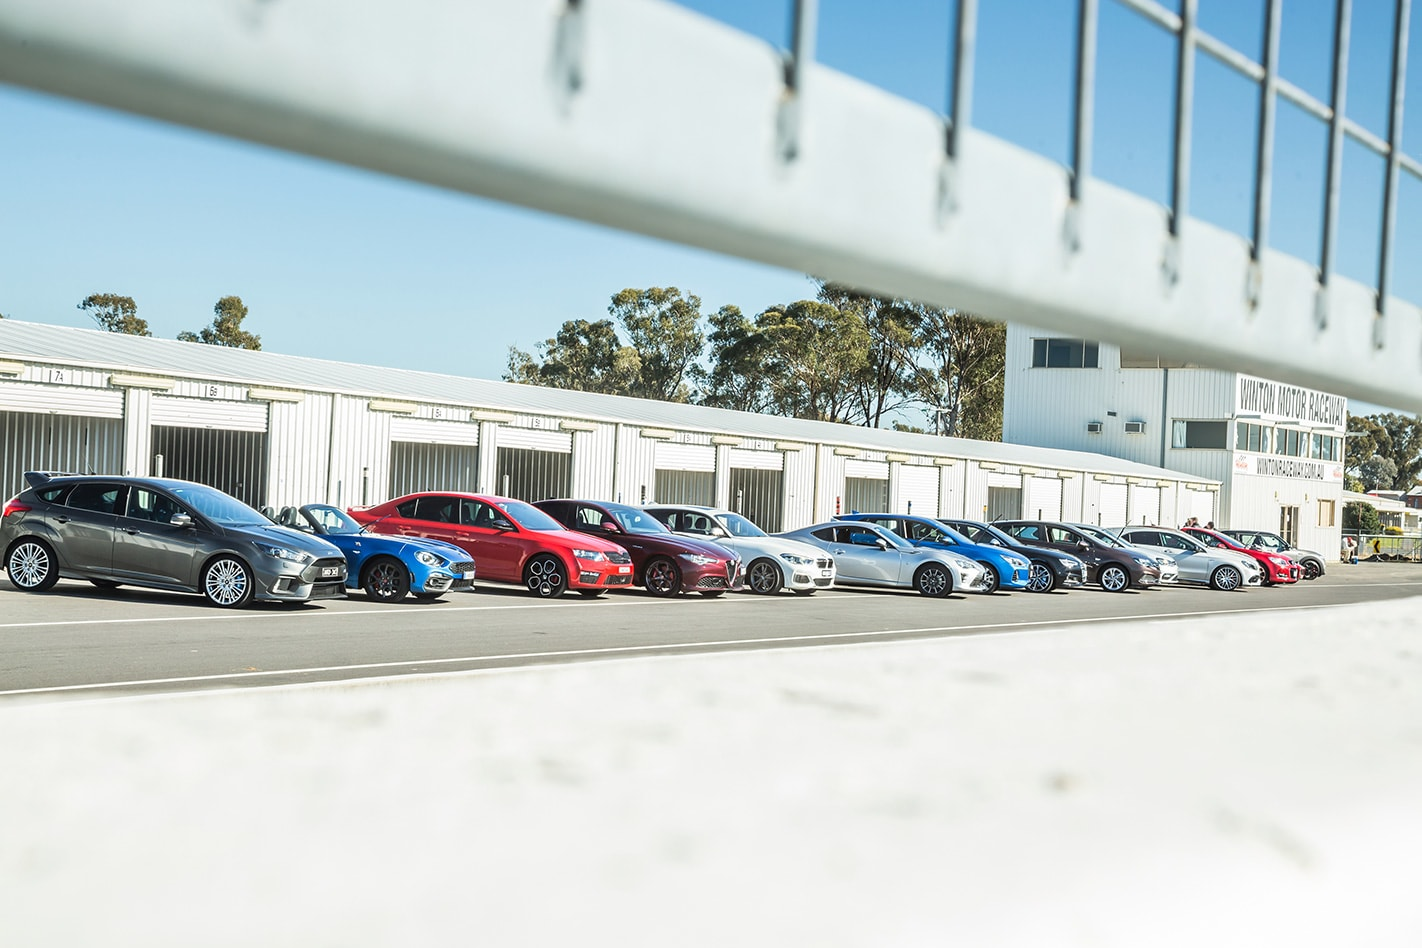 Cars competiting in Best Value Performance Cars